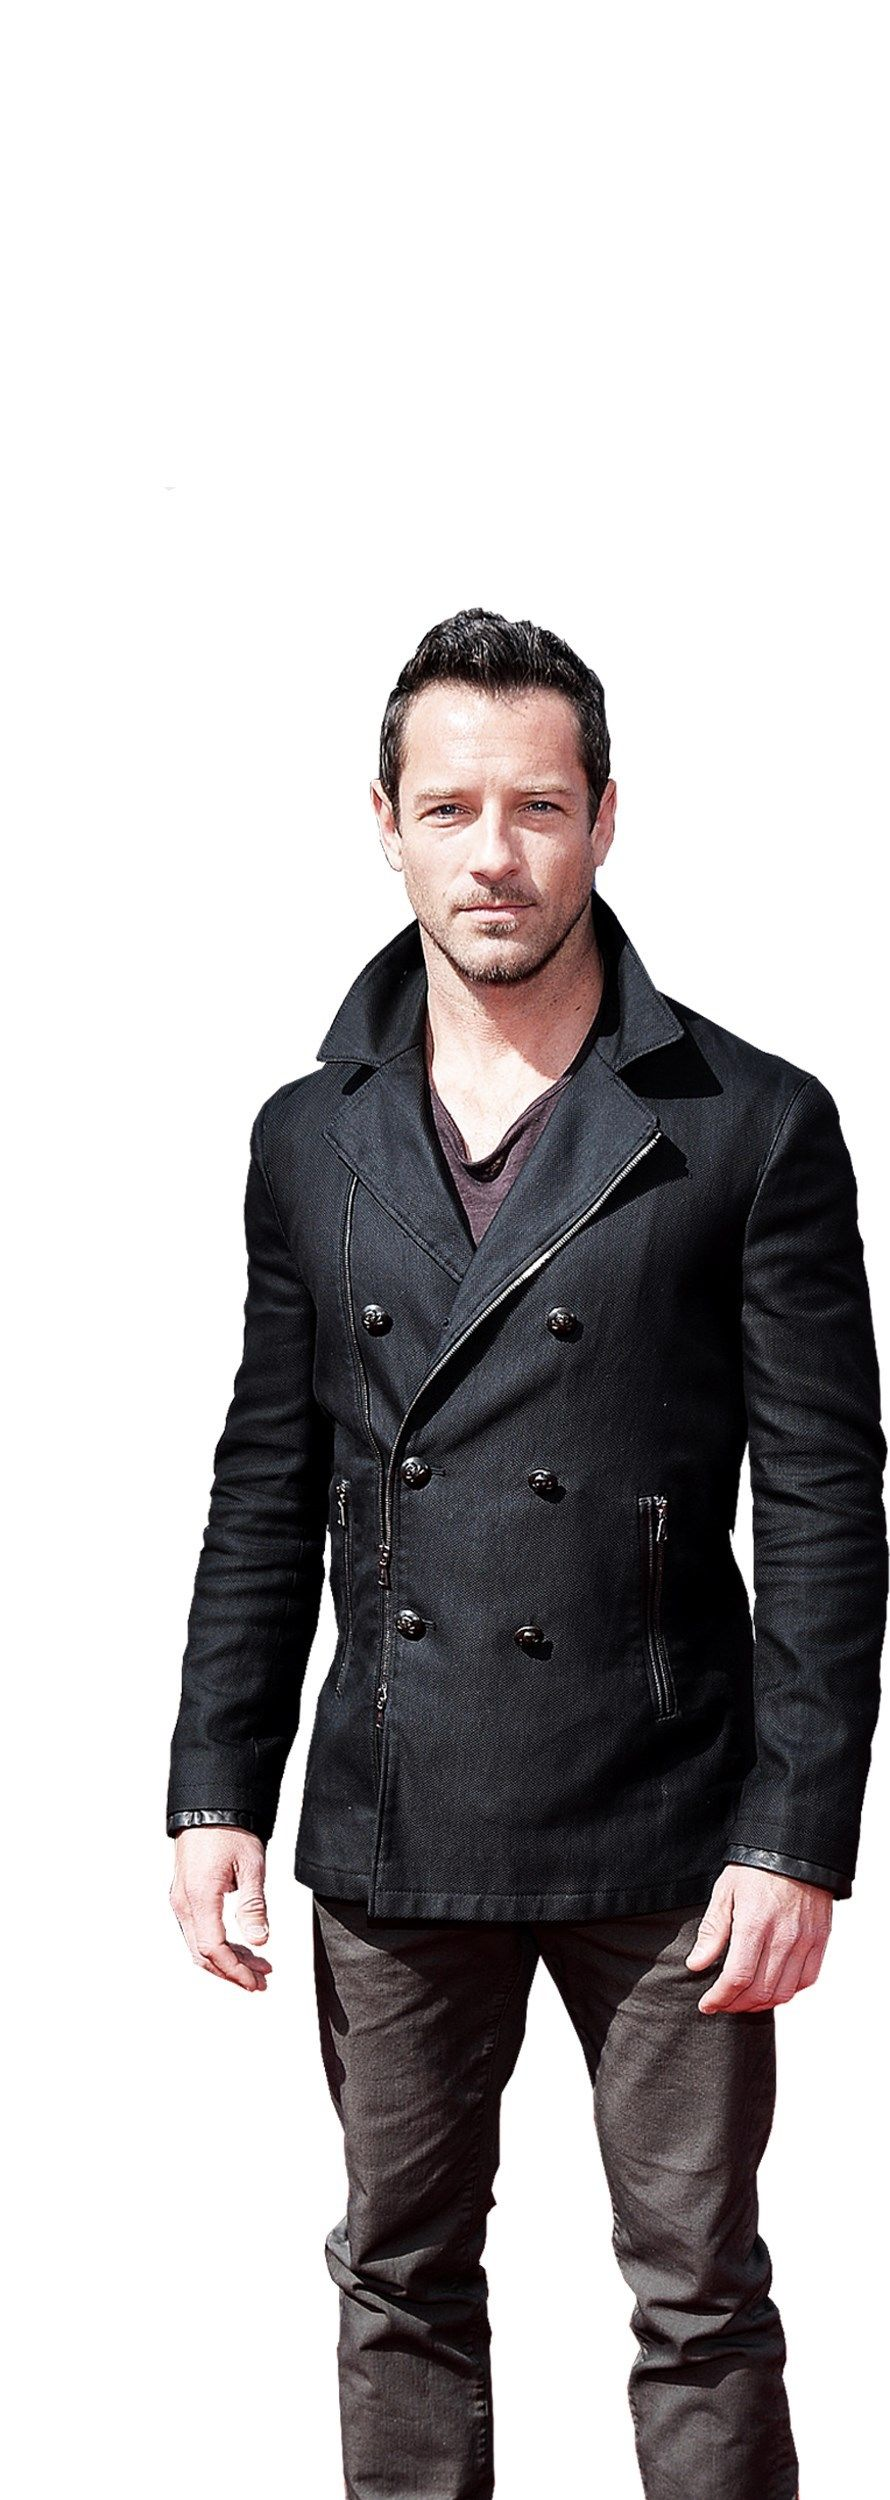 Ian Bohen | Known people - famous people news and biographies